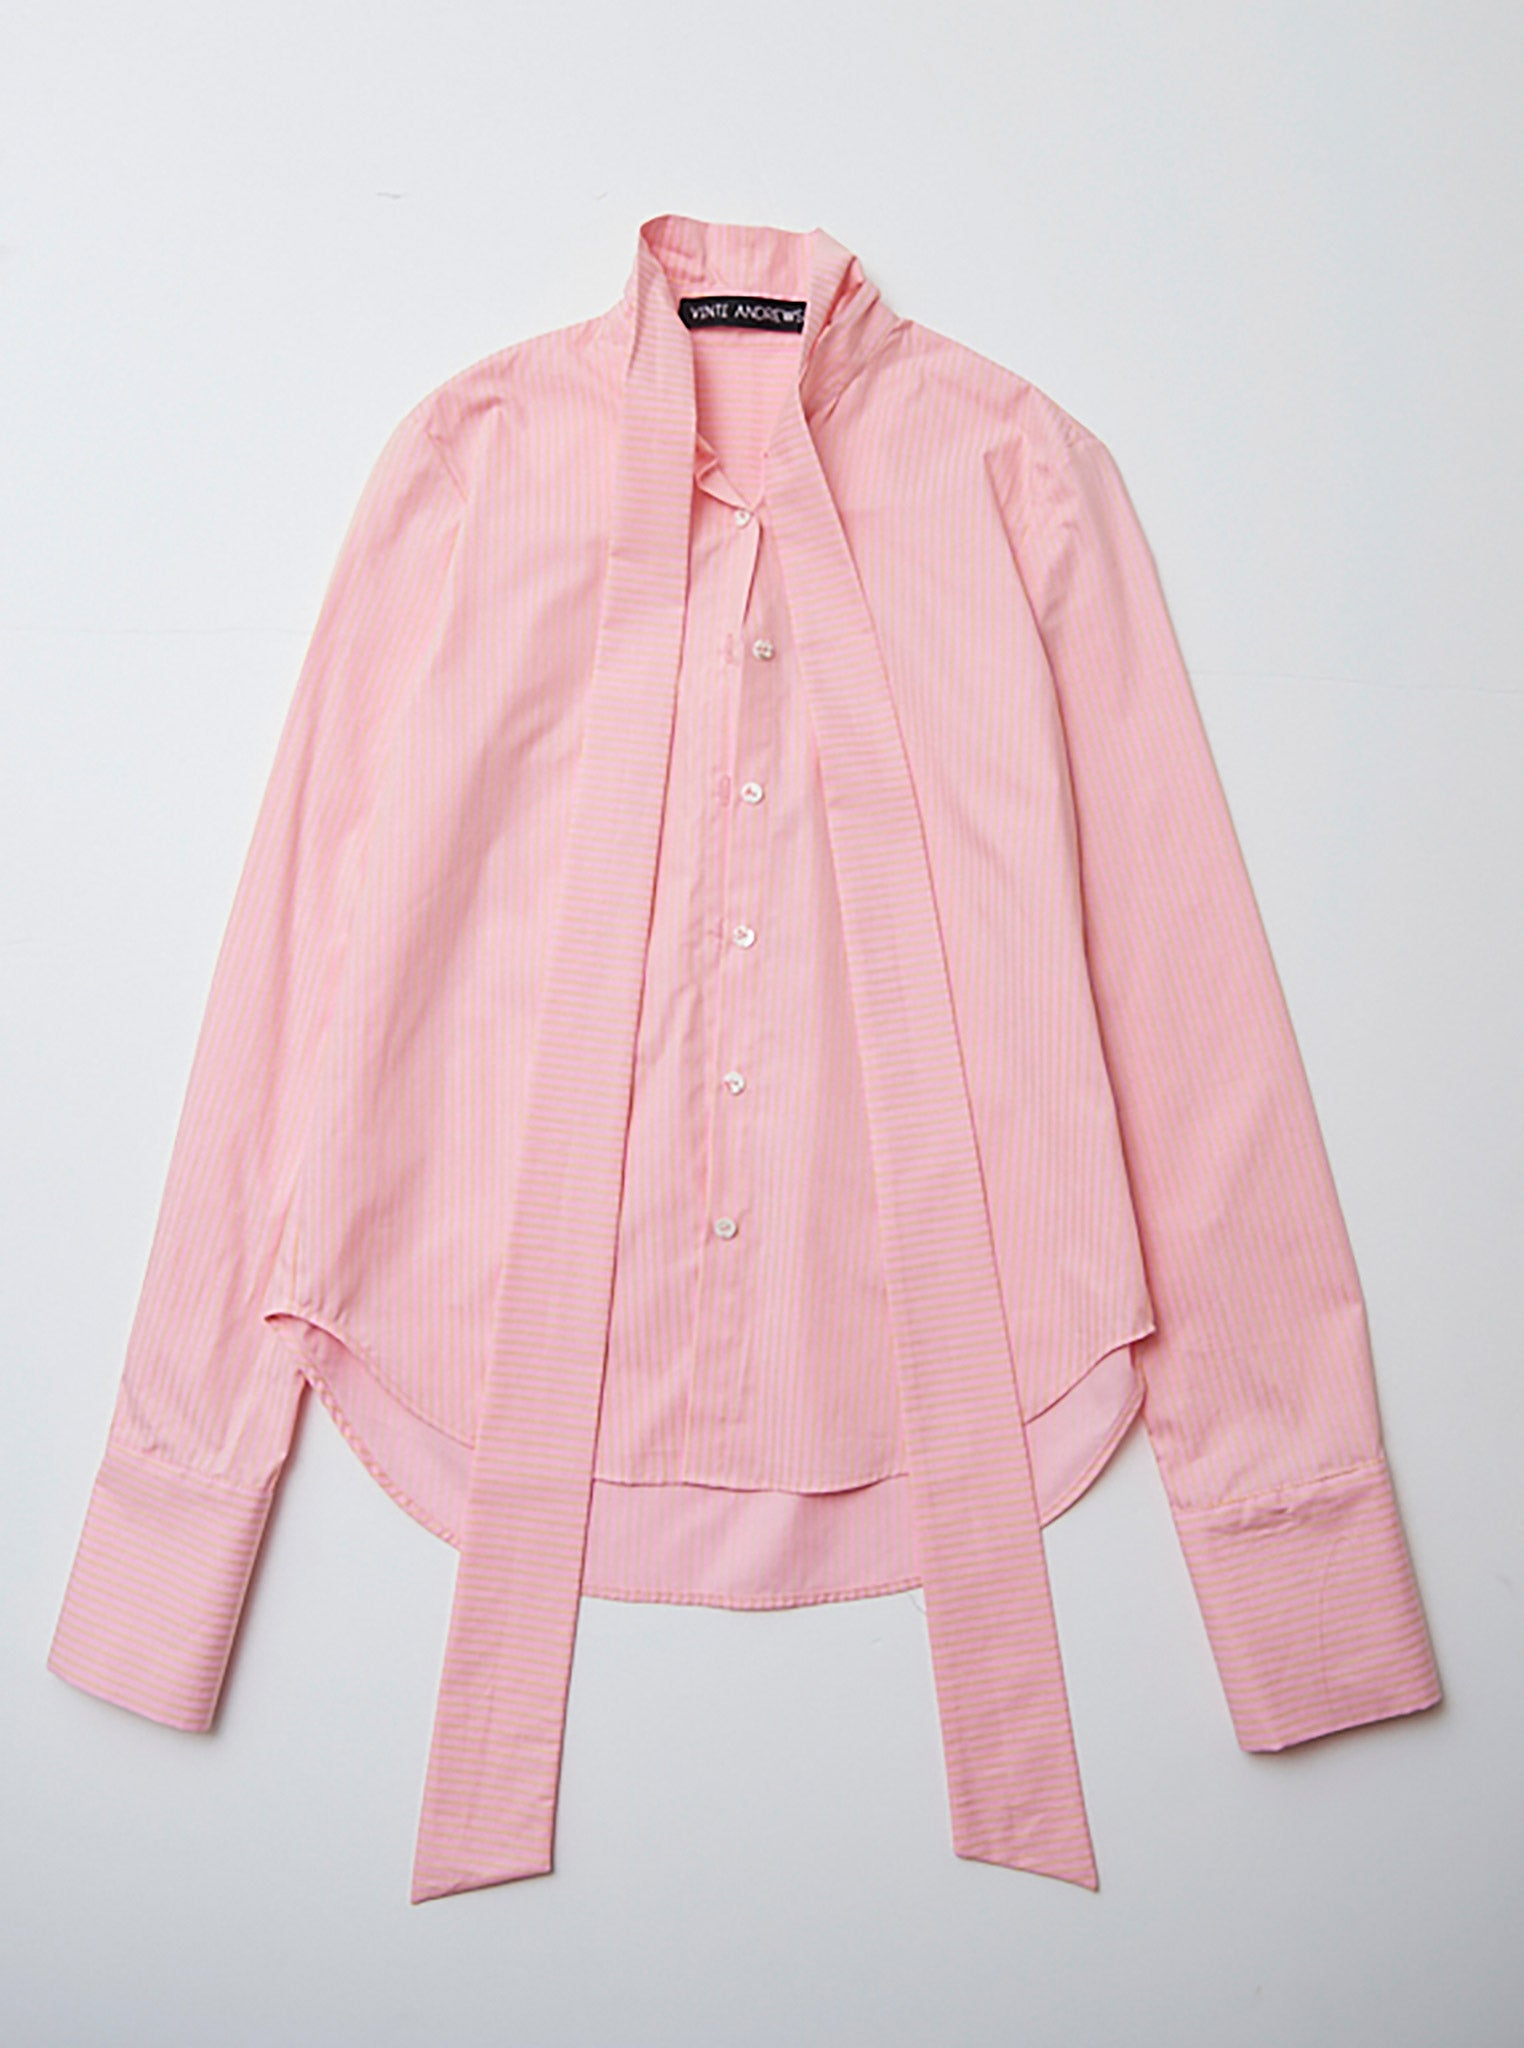 Vinti Andrews Extended Collar Shirt Pink